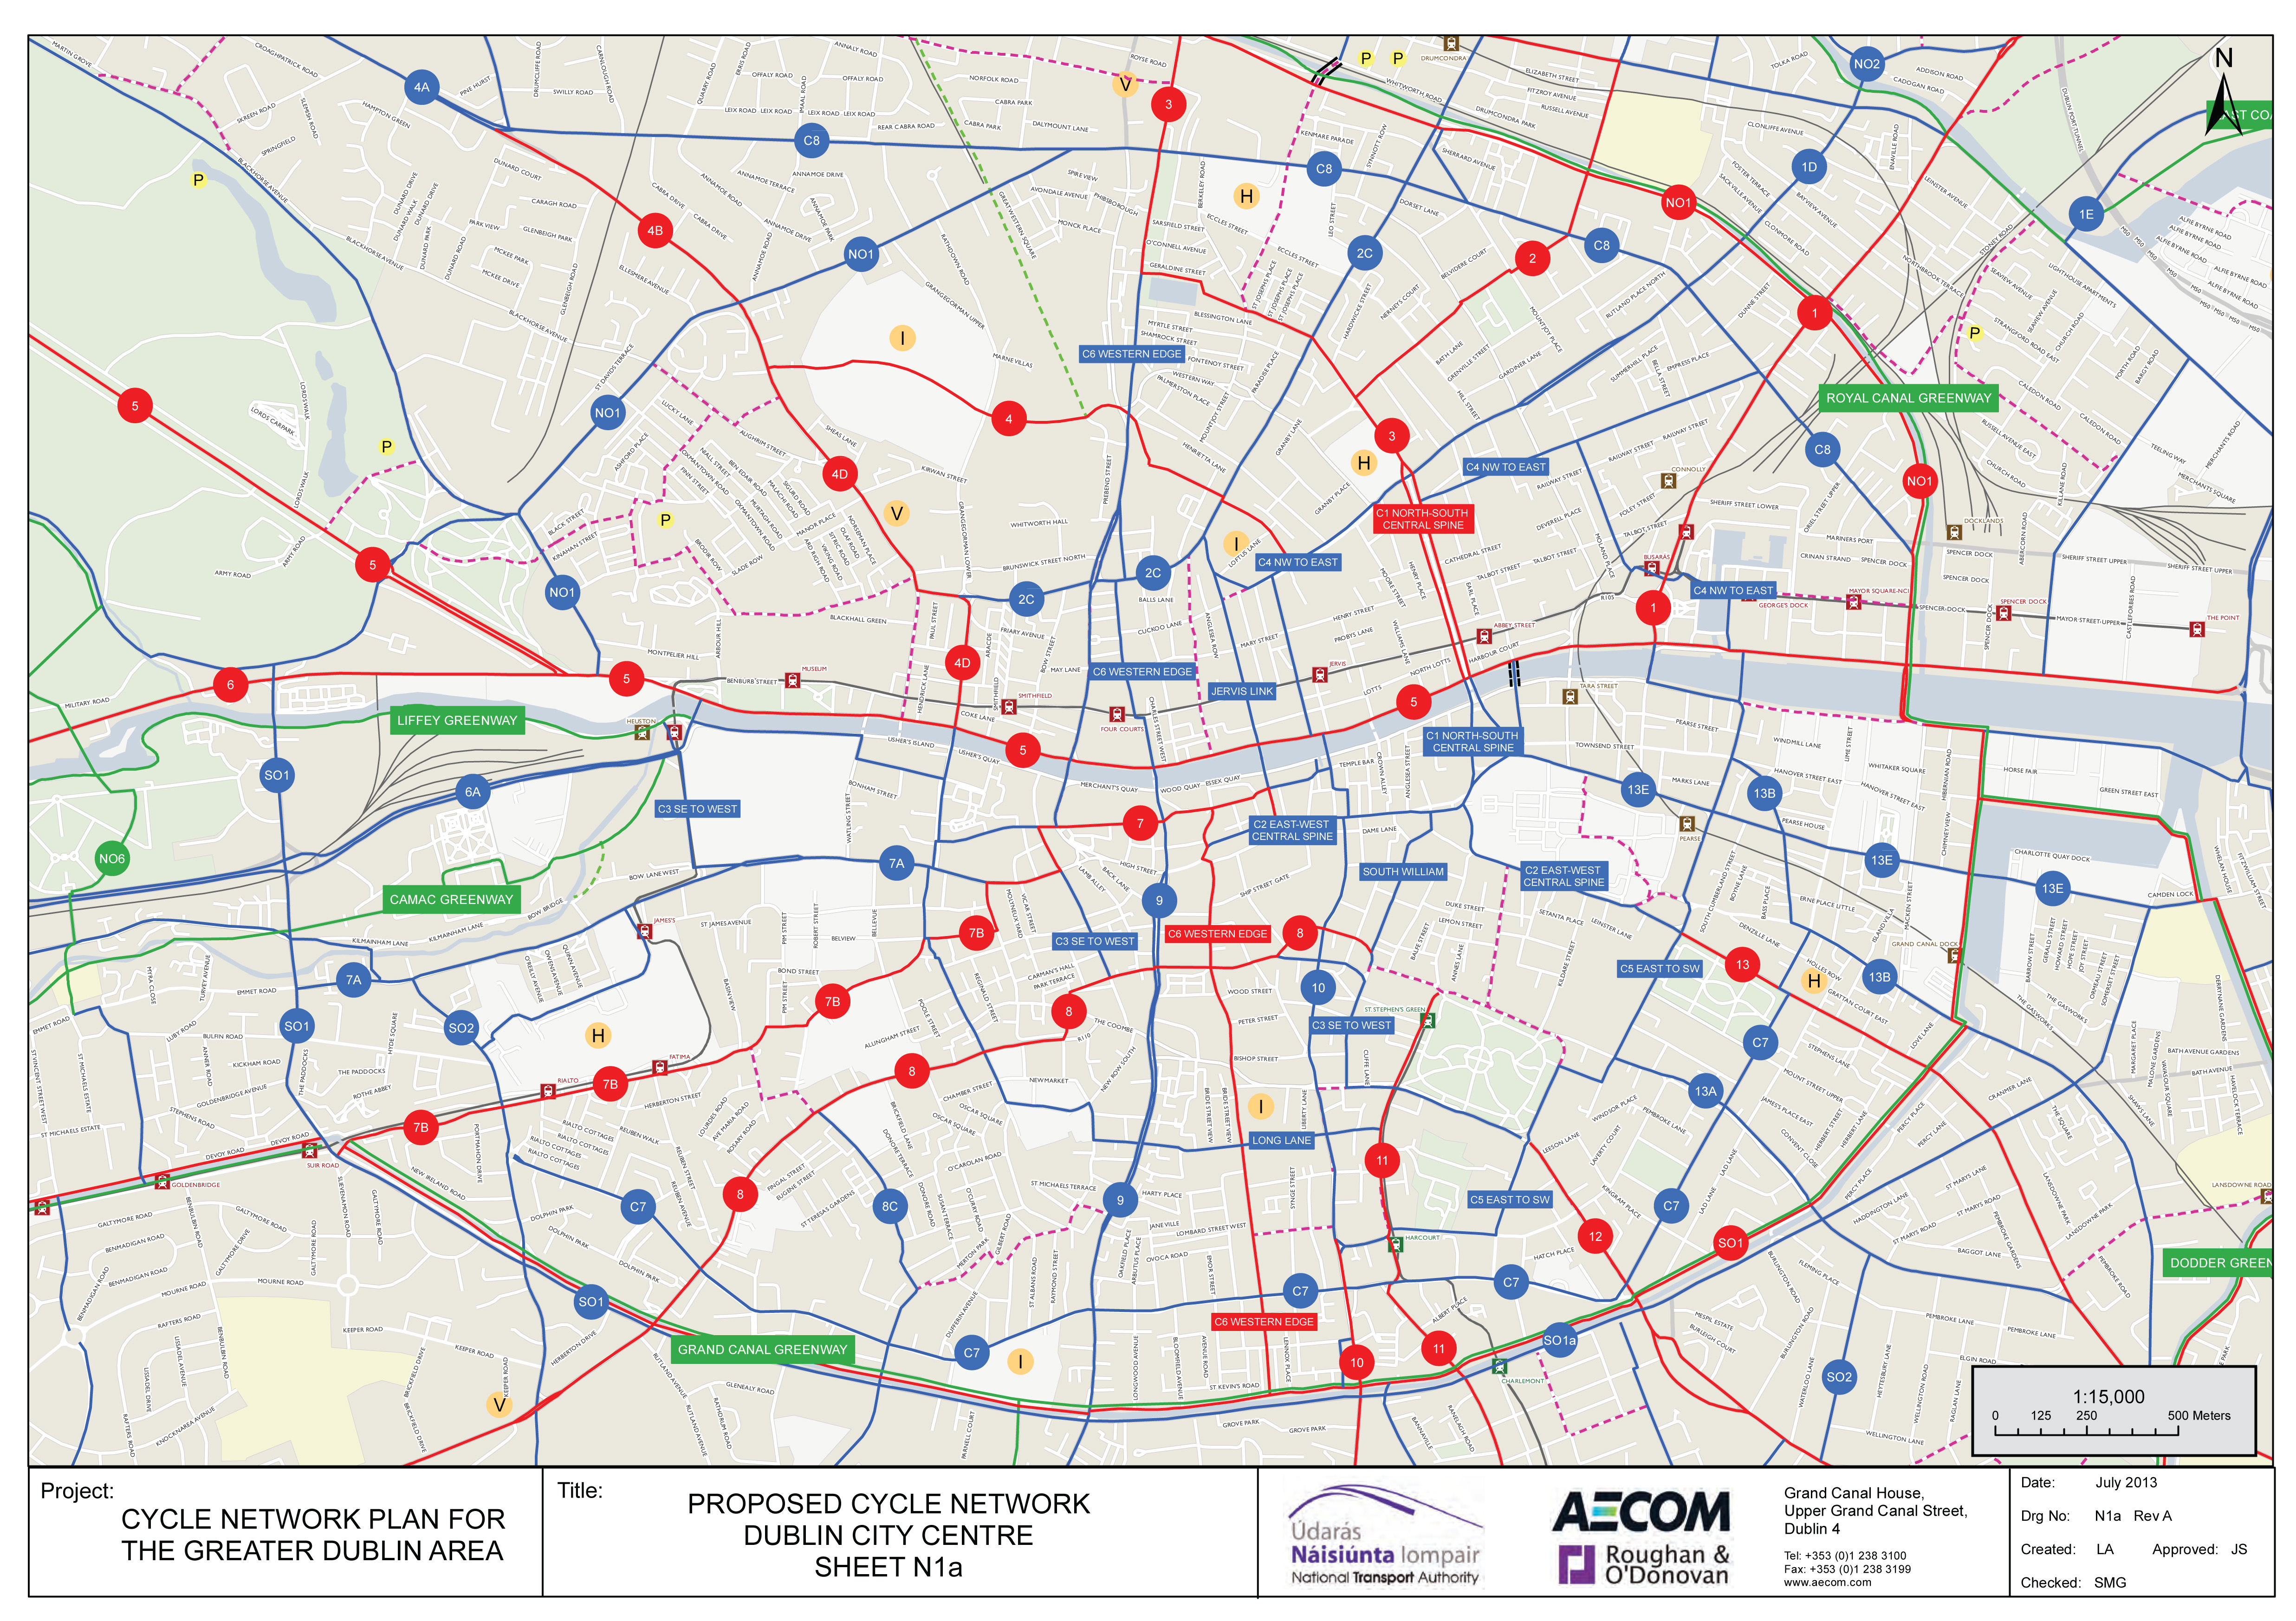 Dublin City Centre draft cycle network map